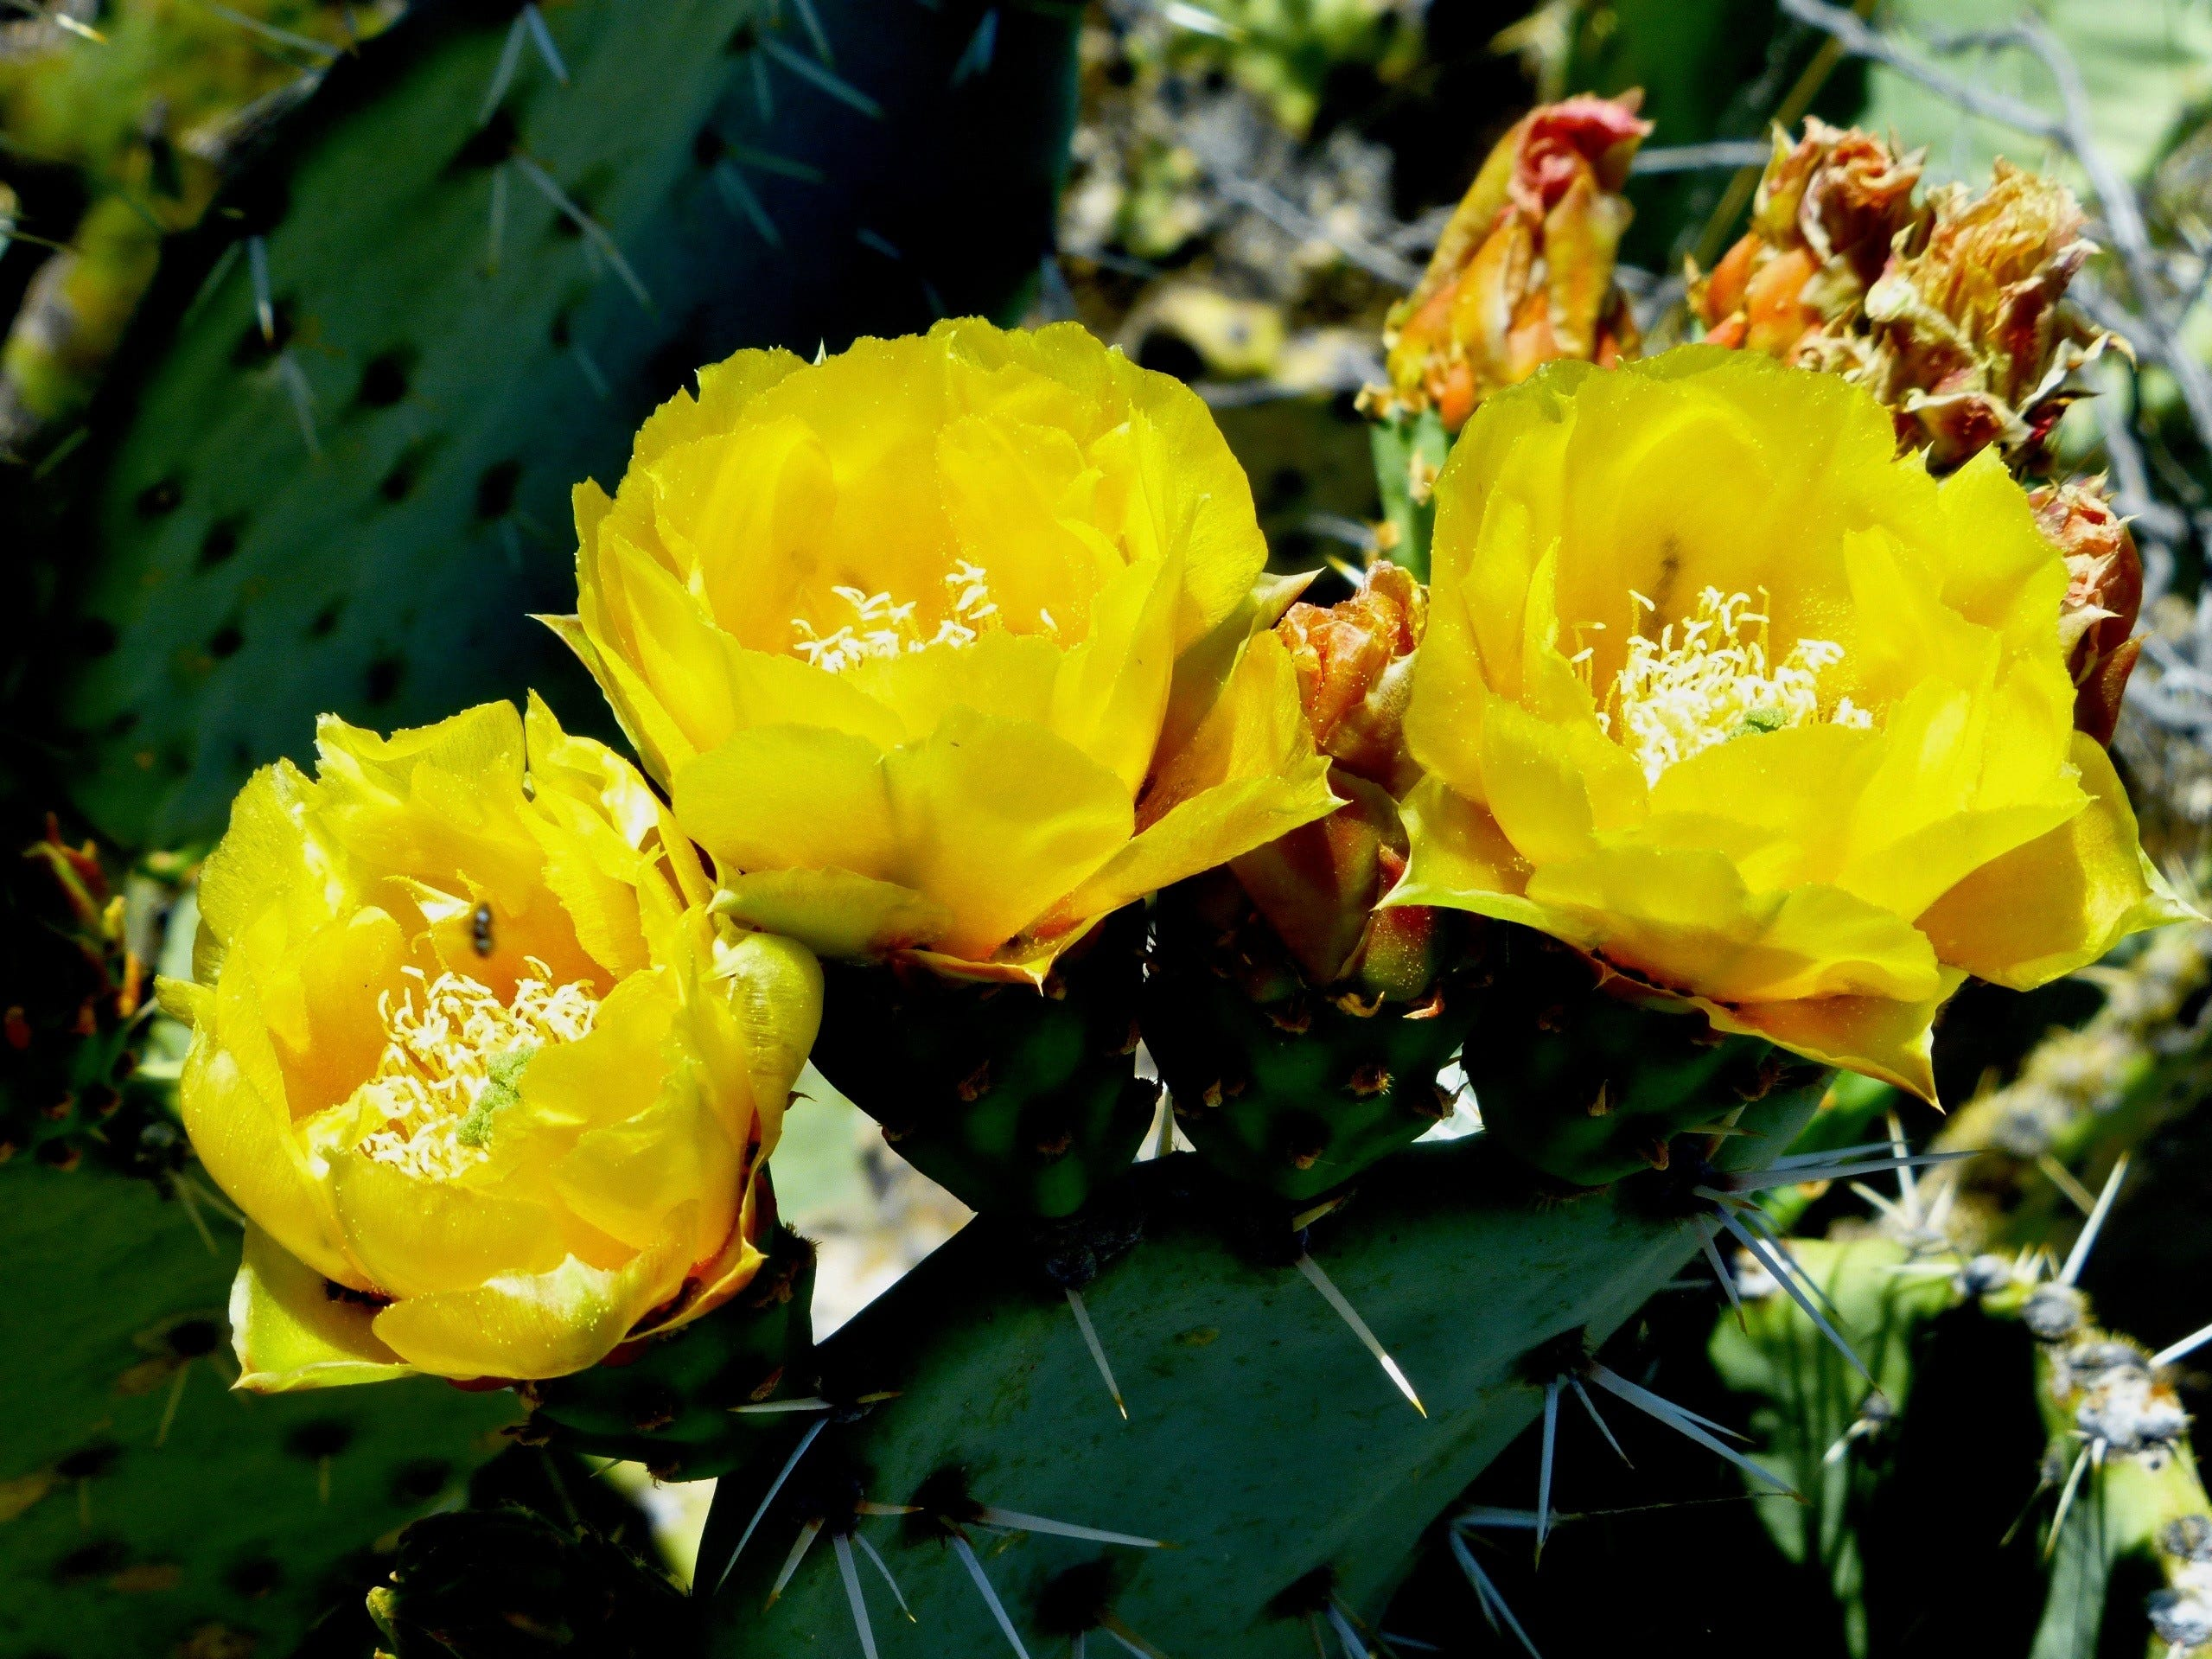 Prickly pear cactus flowers bloom along the Arizona Trail in Oracle State Park.